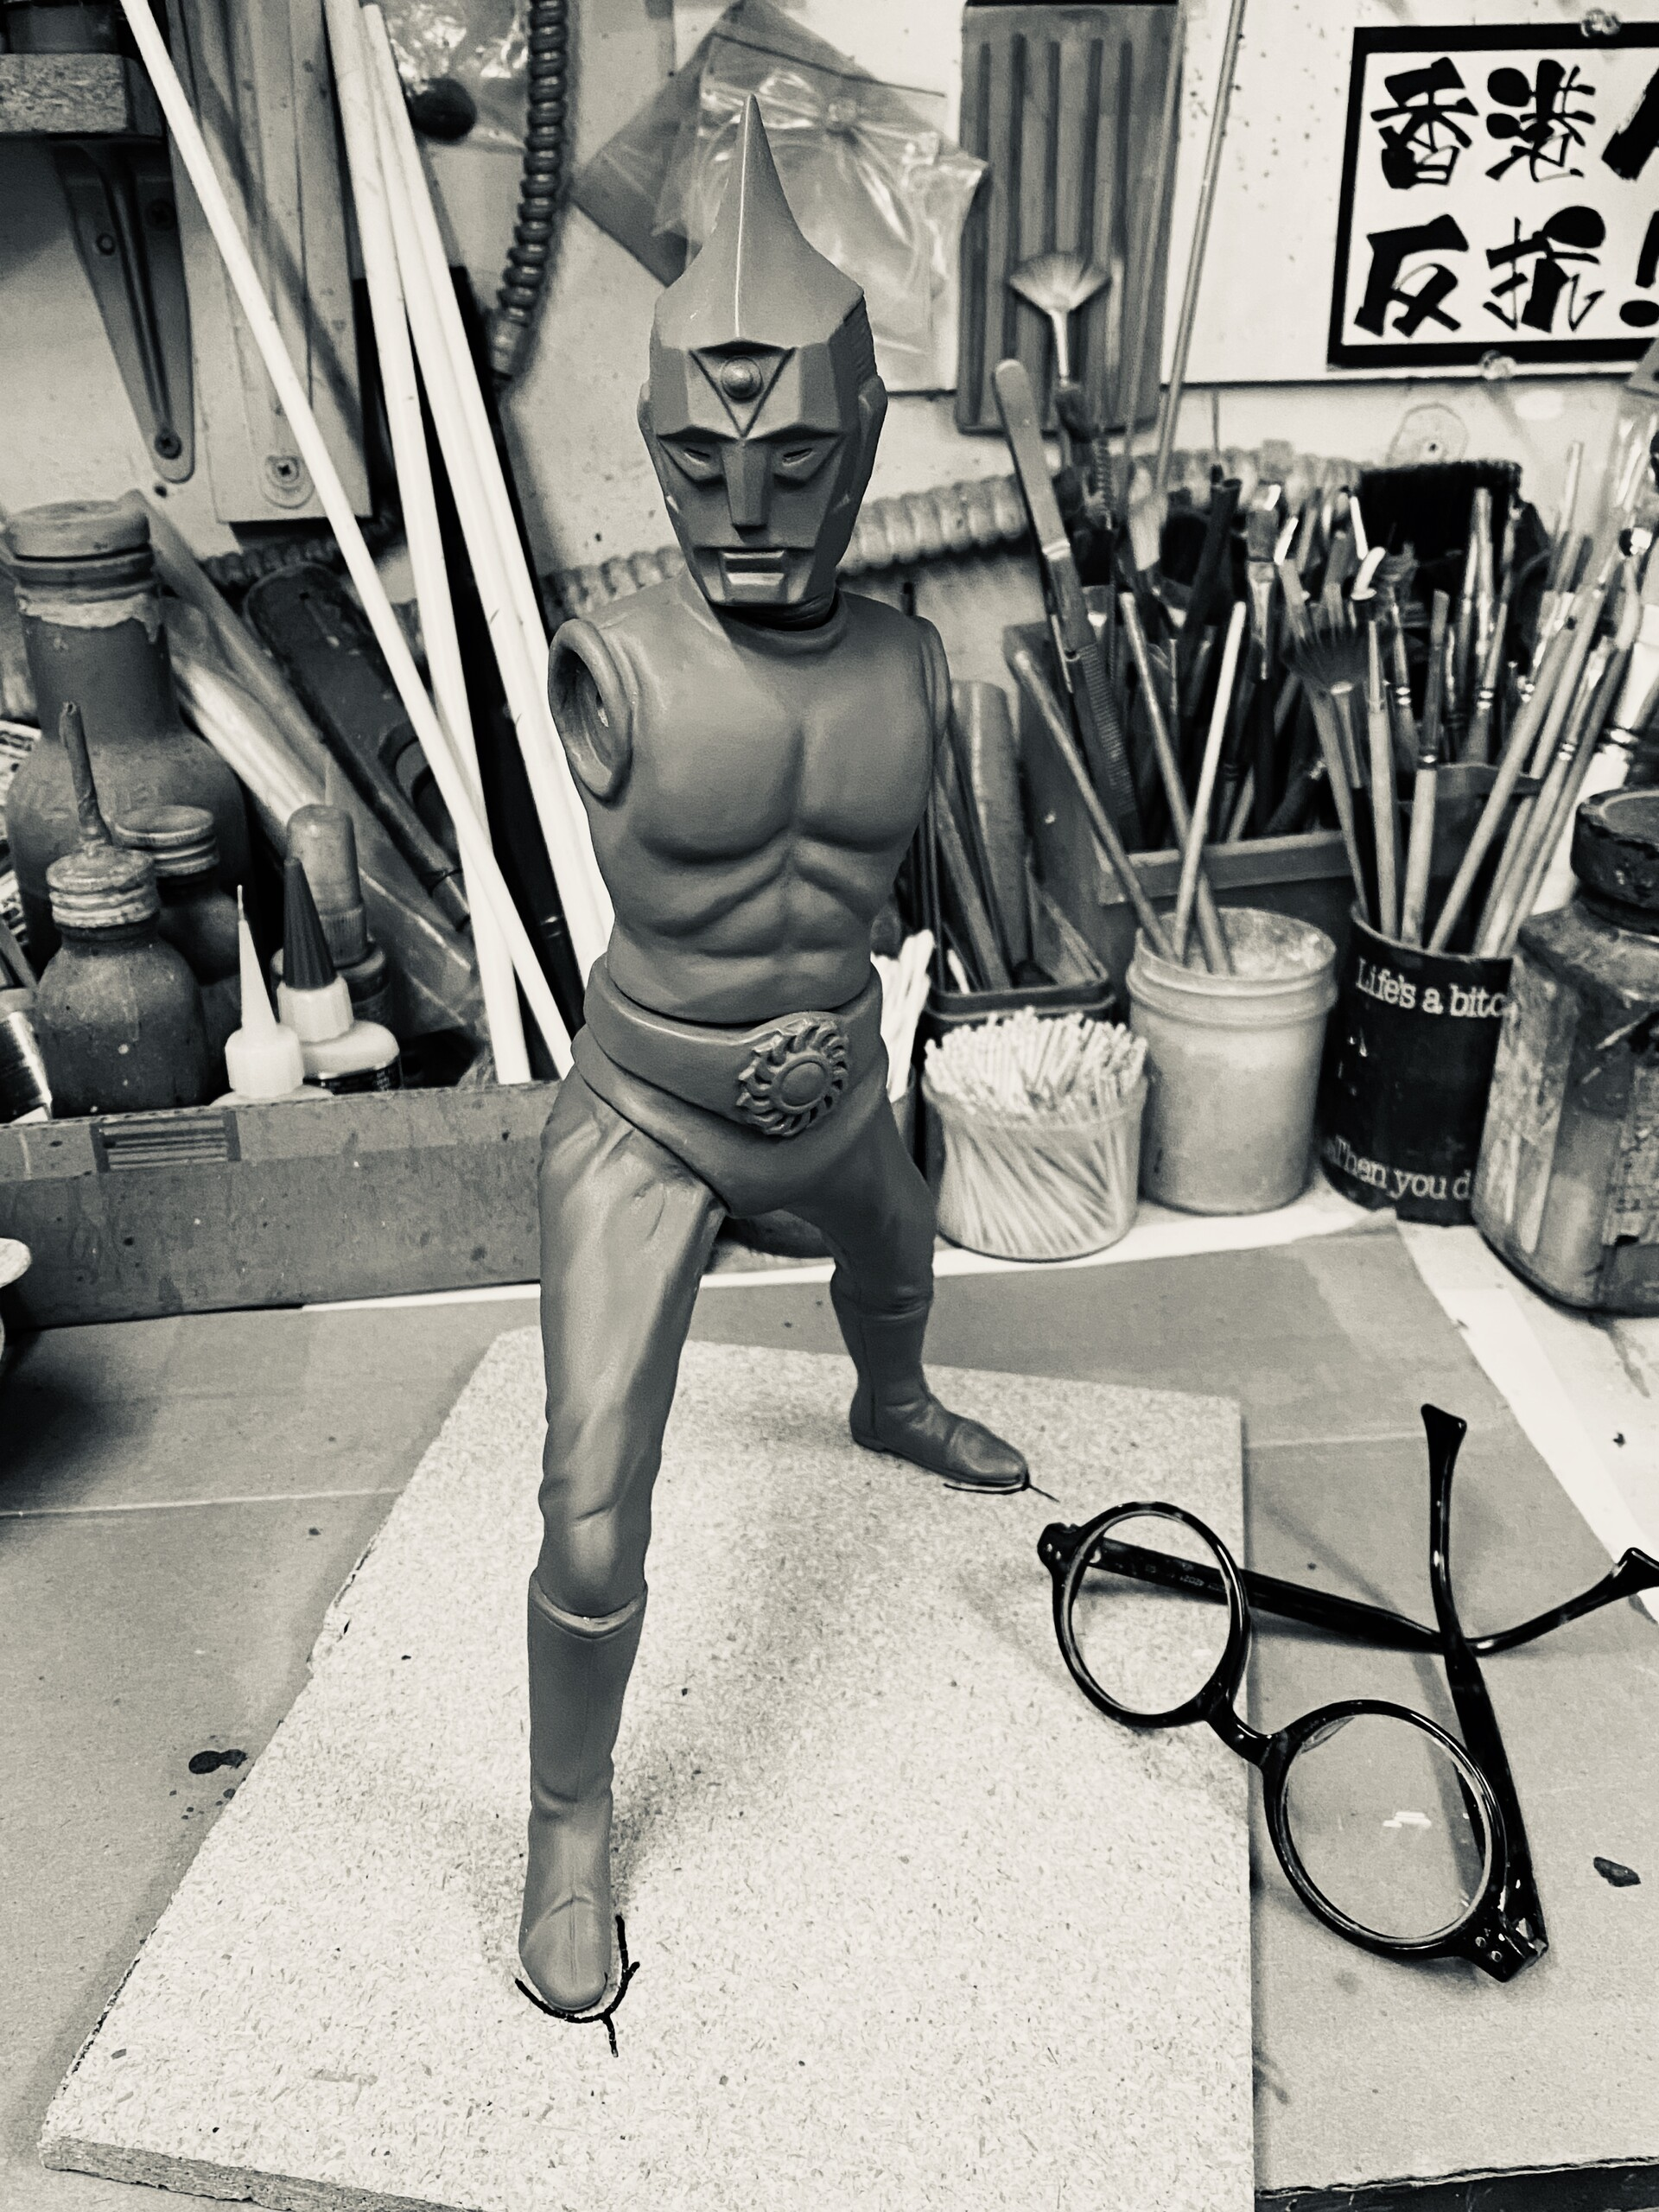 原型制作Robin Kwok: スペクトルマン 30 cm